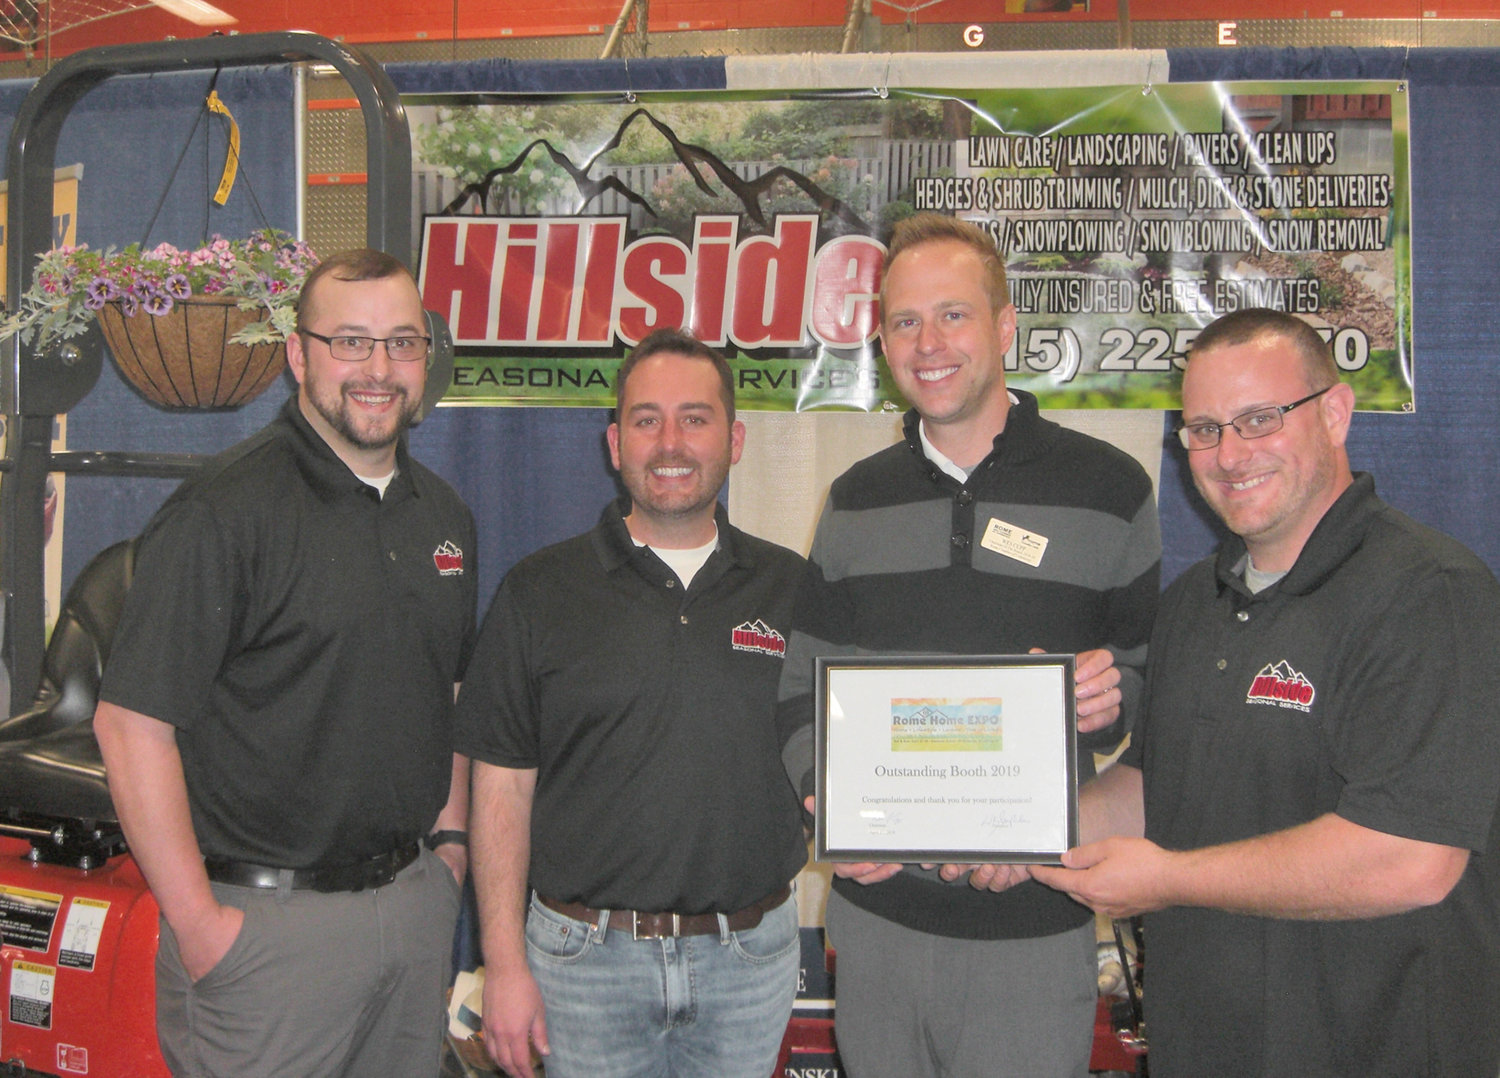 HILLSIDE RECOGNIZED — HIllside Seasonal Services was recognized as having an outstanding booth at the Rome Home Expo last weekend. From left to right: Nick Britton, landscape designer; Chris Palinski, co-owner; Wes Cupp, Rome Chamber Board Chairman; Eric Tyler, co-owner. According to Rome Home EXPO event organizers, the annual event drew more than 1,200 visitors to the J.F. Kennedy Civic Area.